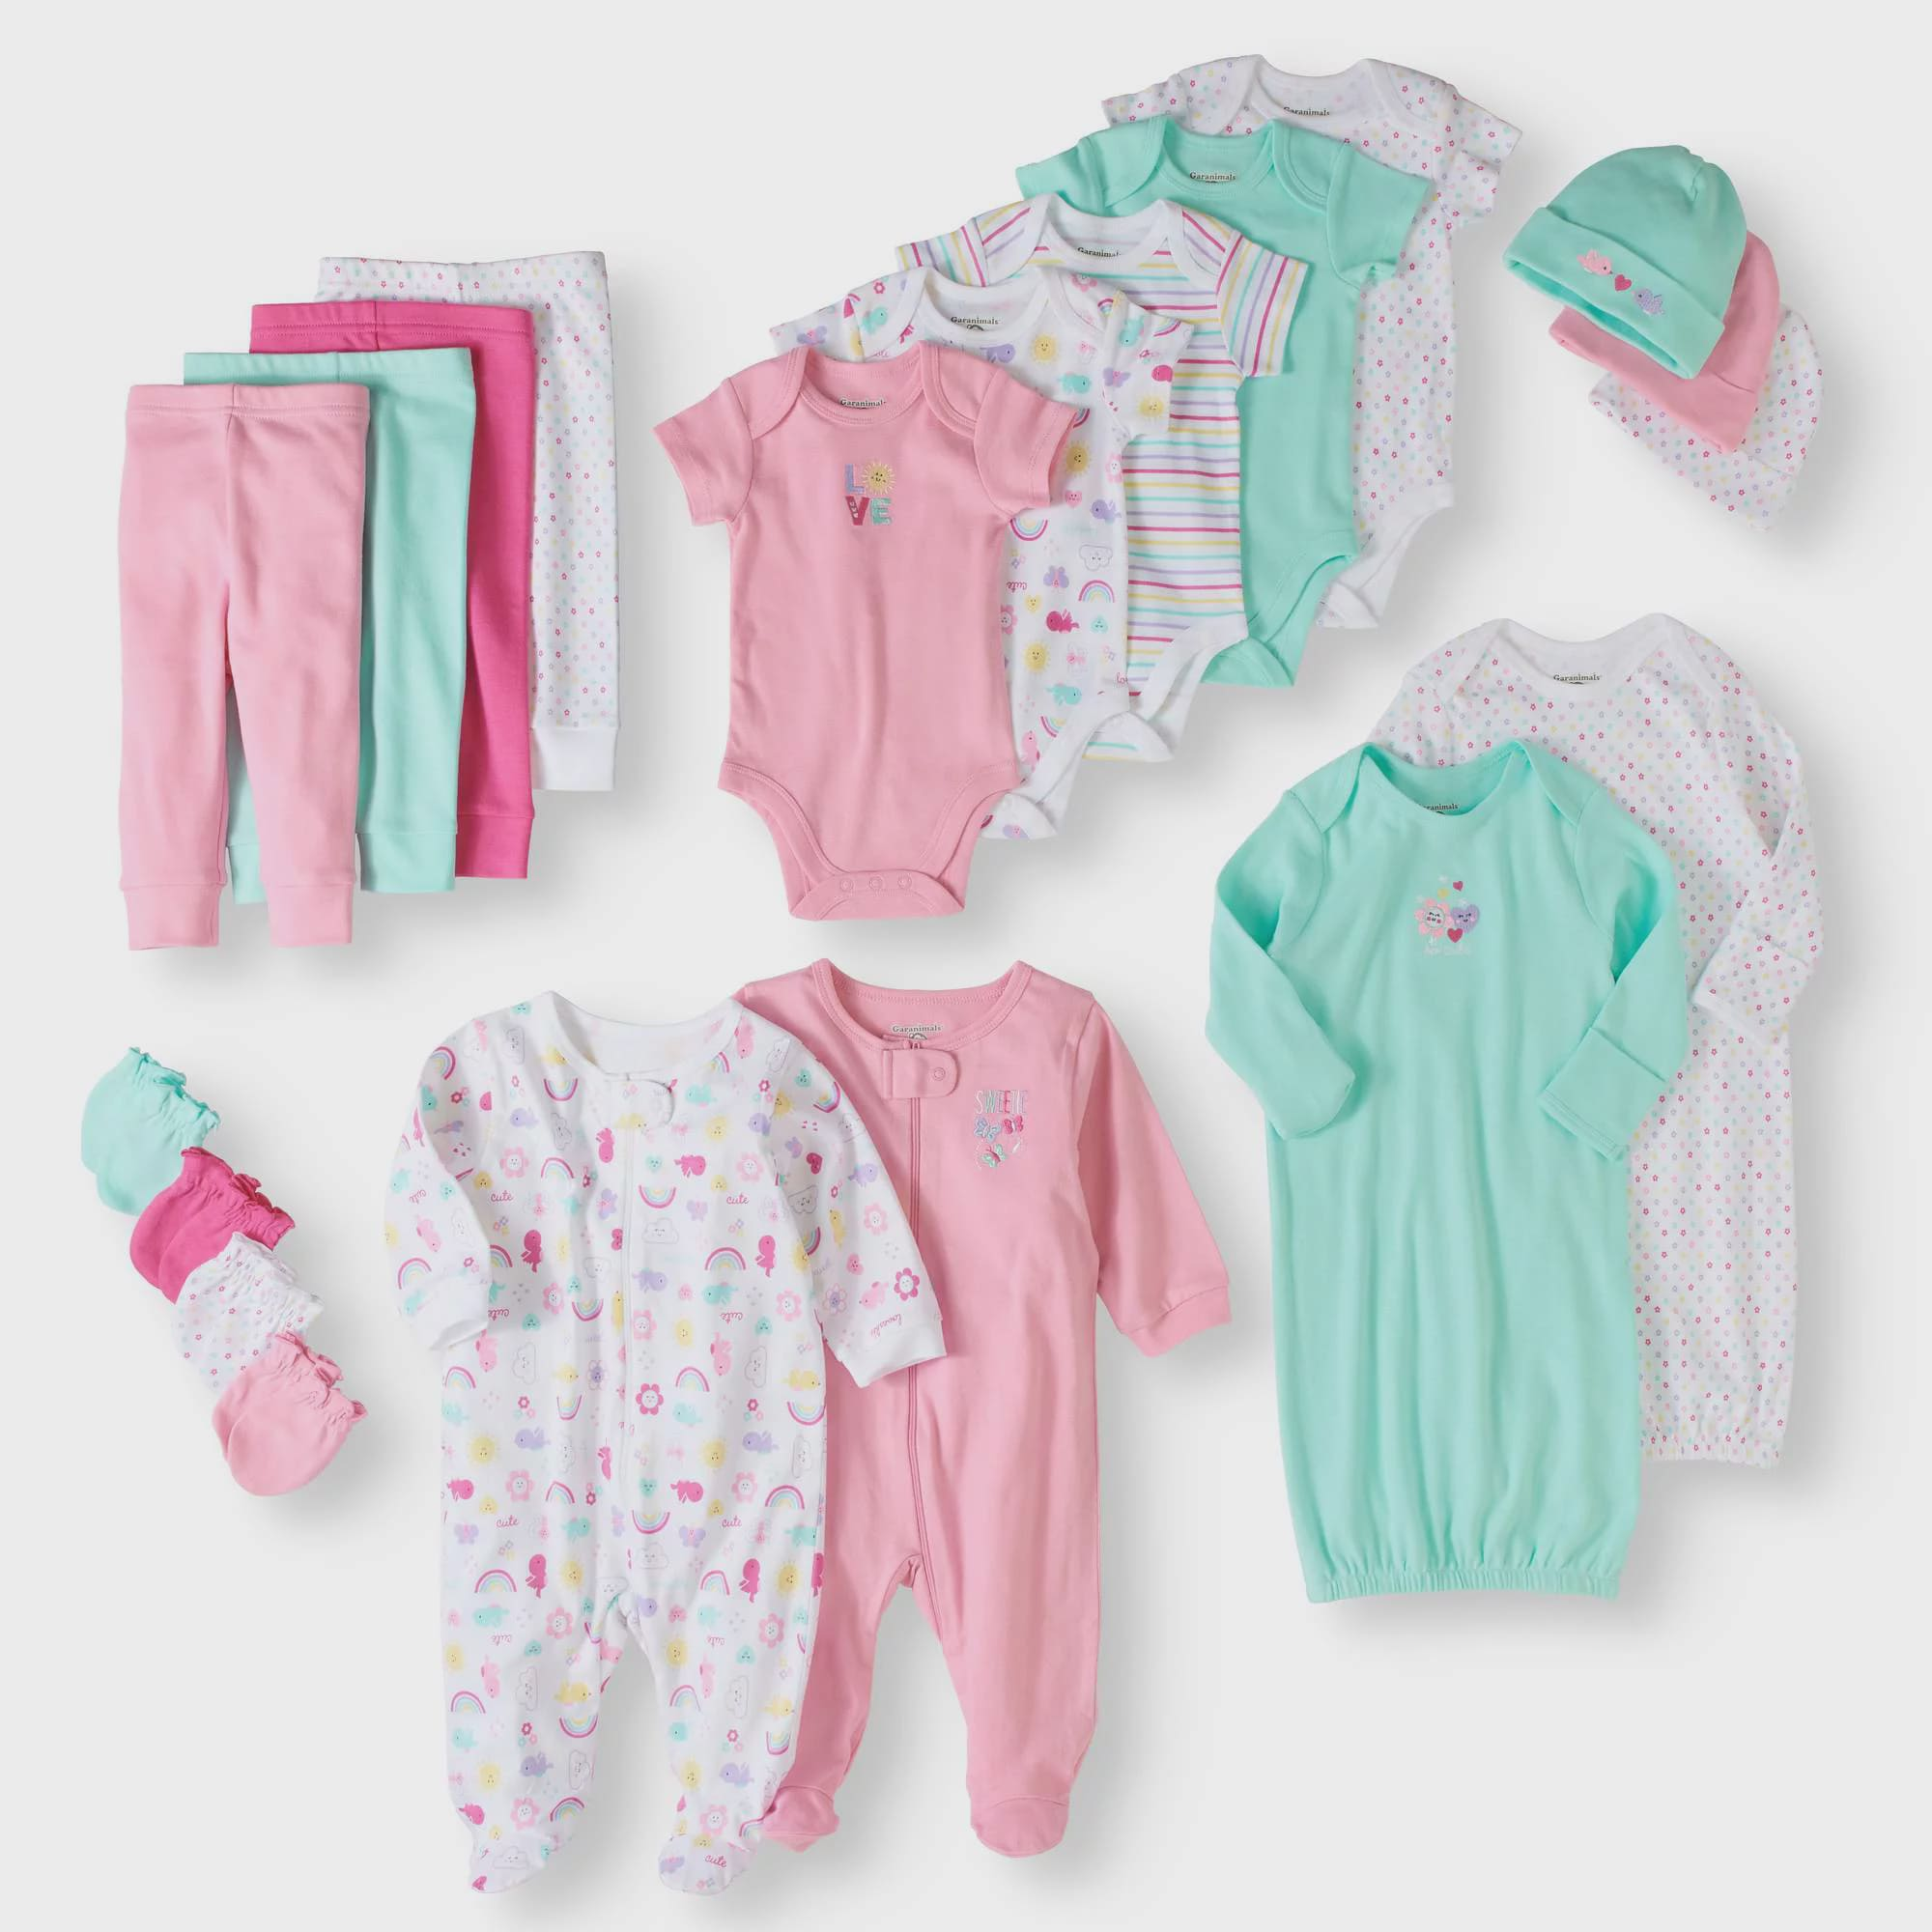 Click here to buy Garanimals Newborn Baby Girl 20 Piece Layette Baby Shower Gift Set.